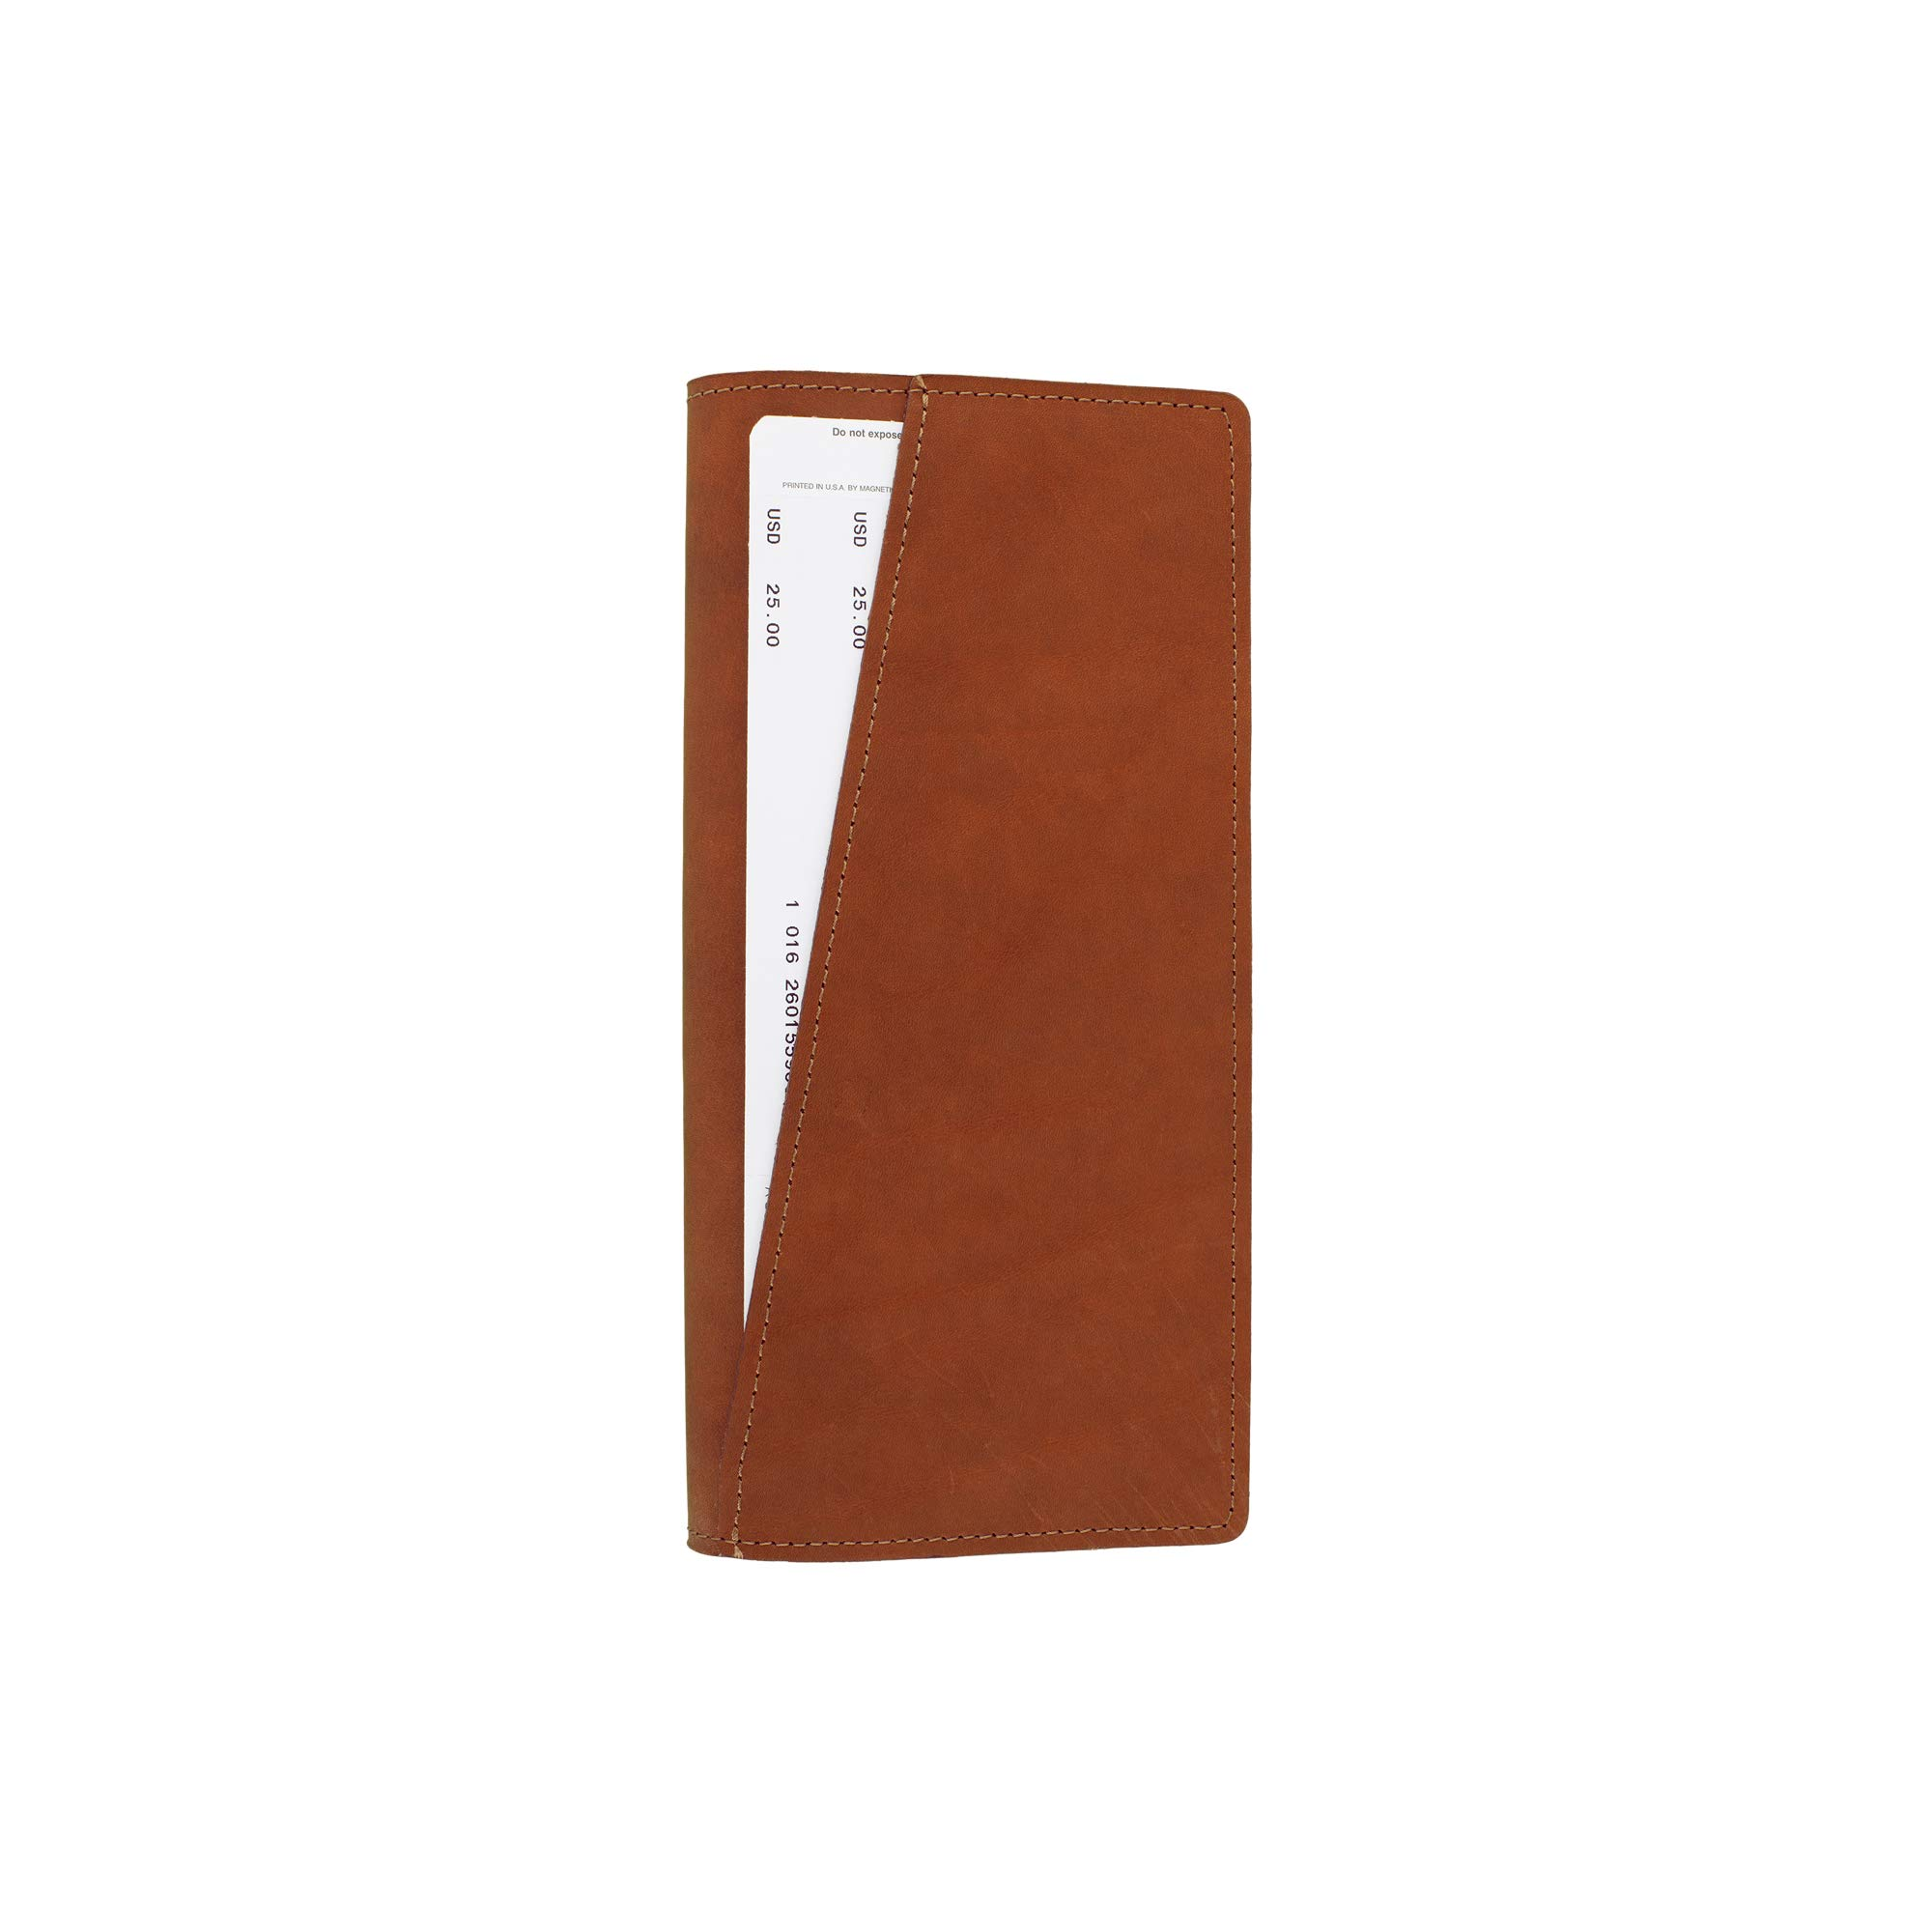 SLATE COLLECTION Lakeway Travel Wallet, Full-grain Leather (Cognac) by SLATE COLLECTION